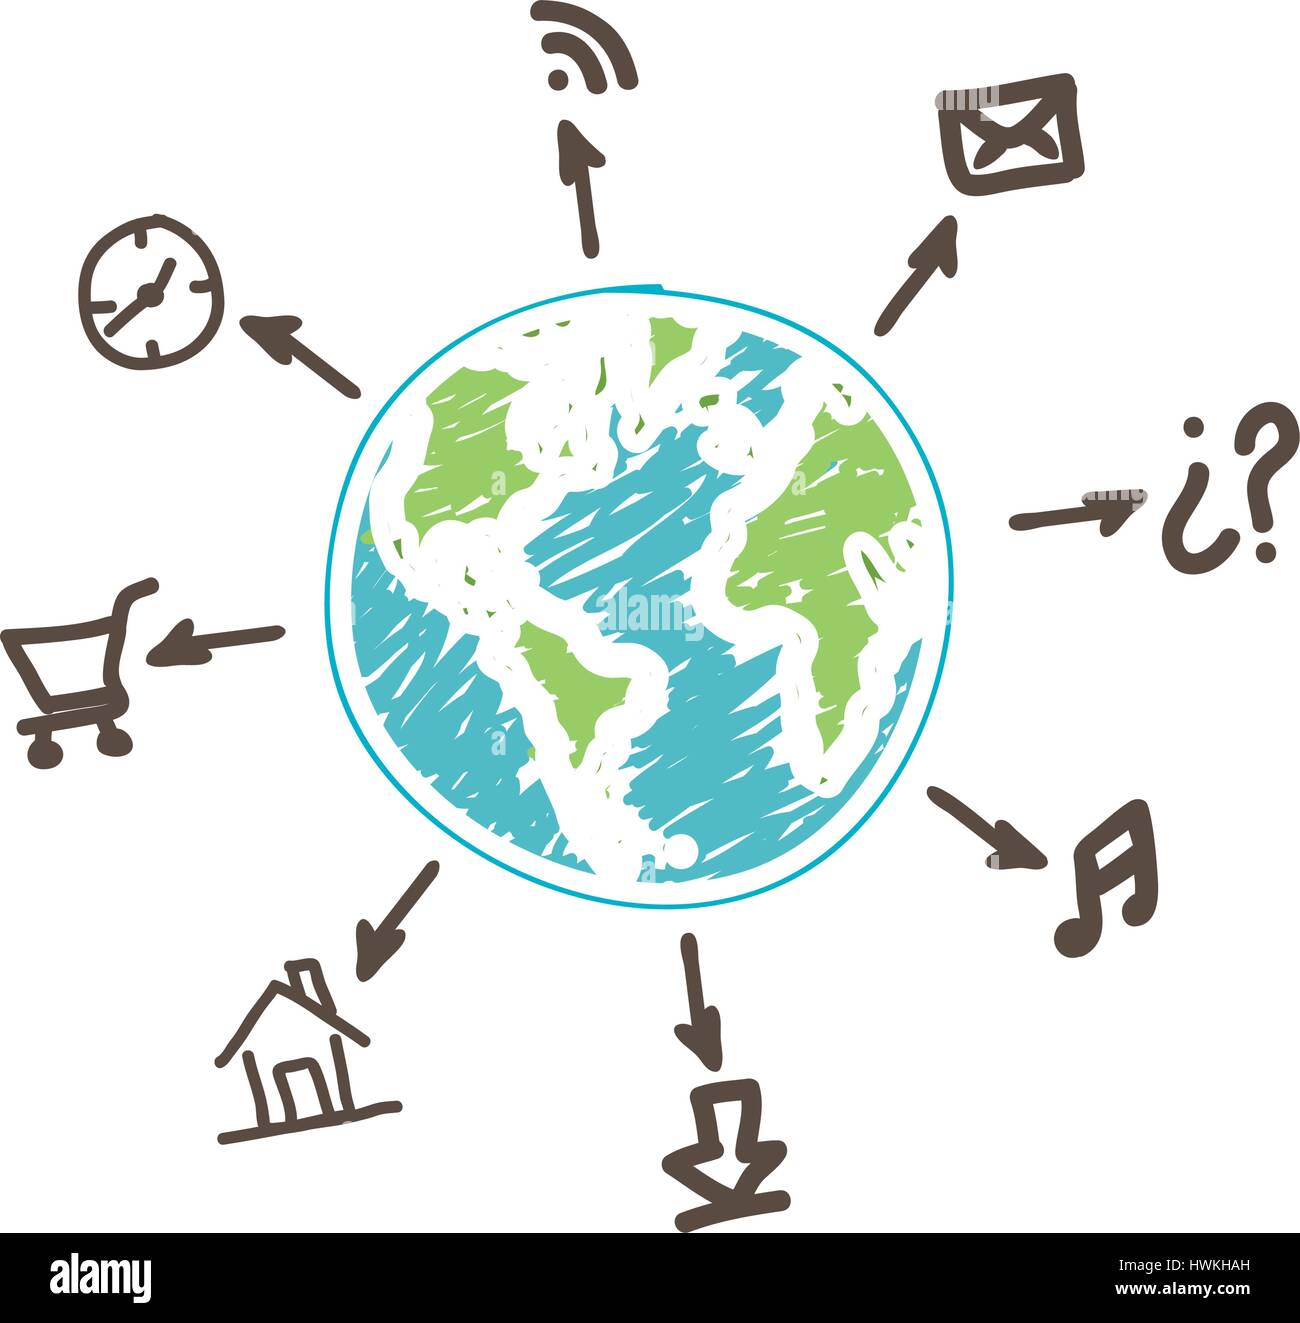 global connect apps services network - Stock Image